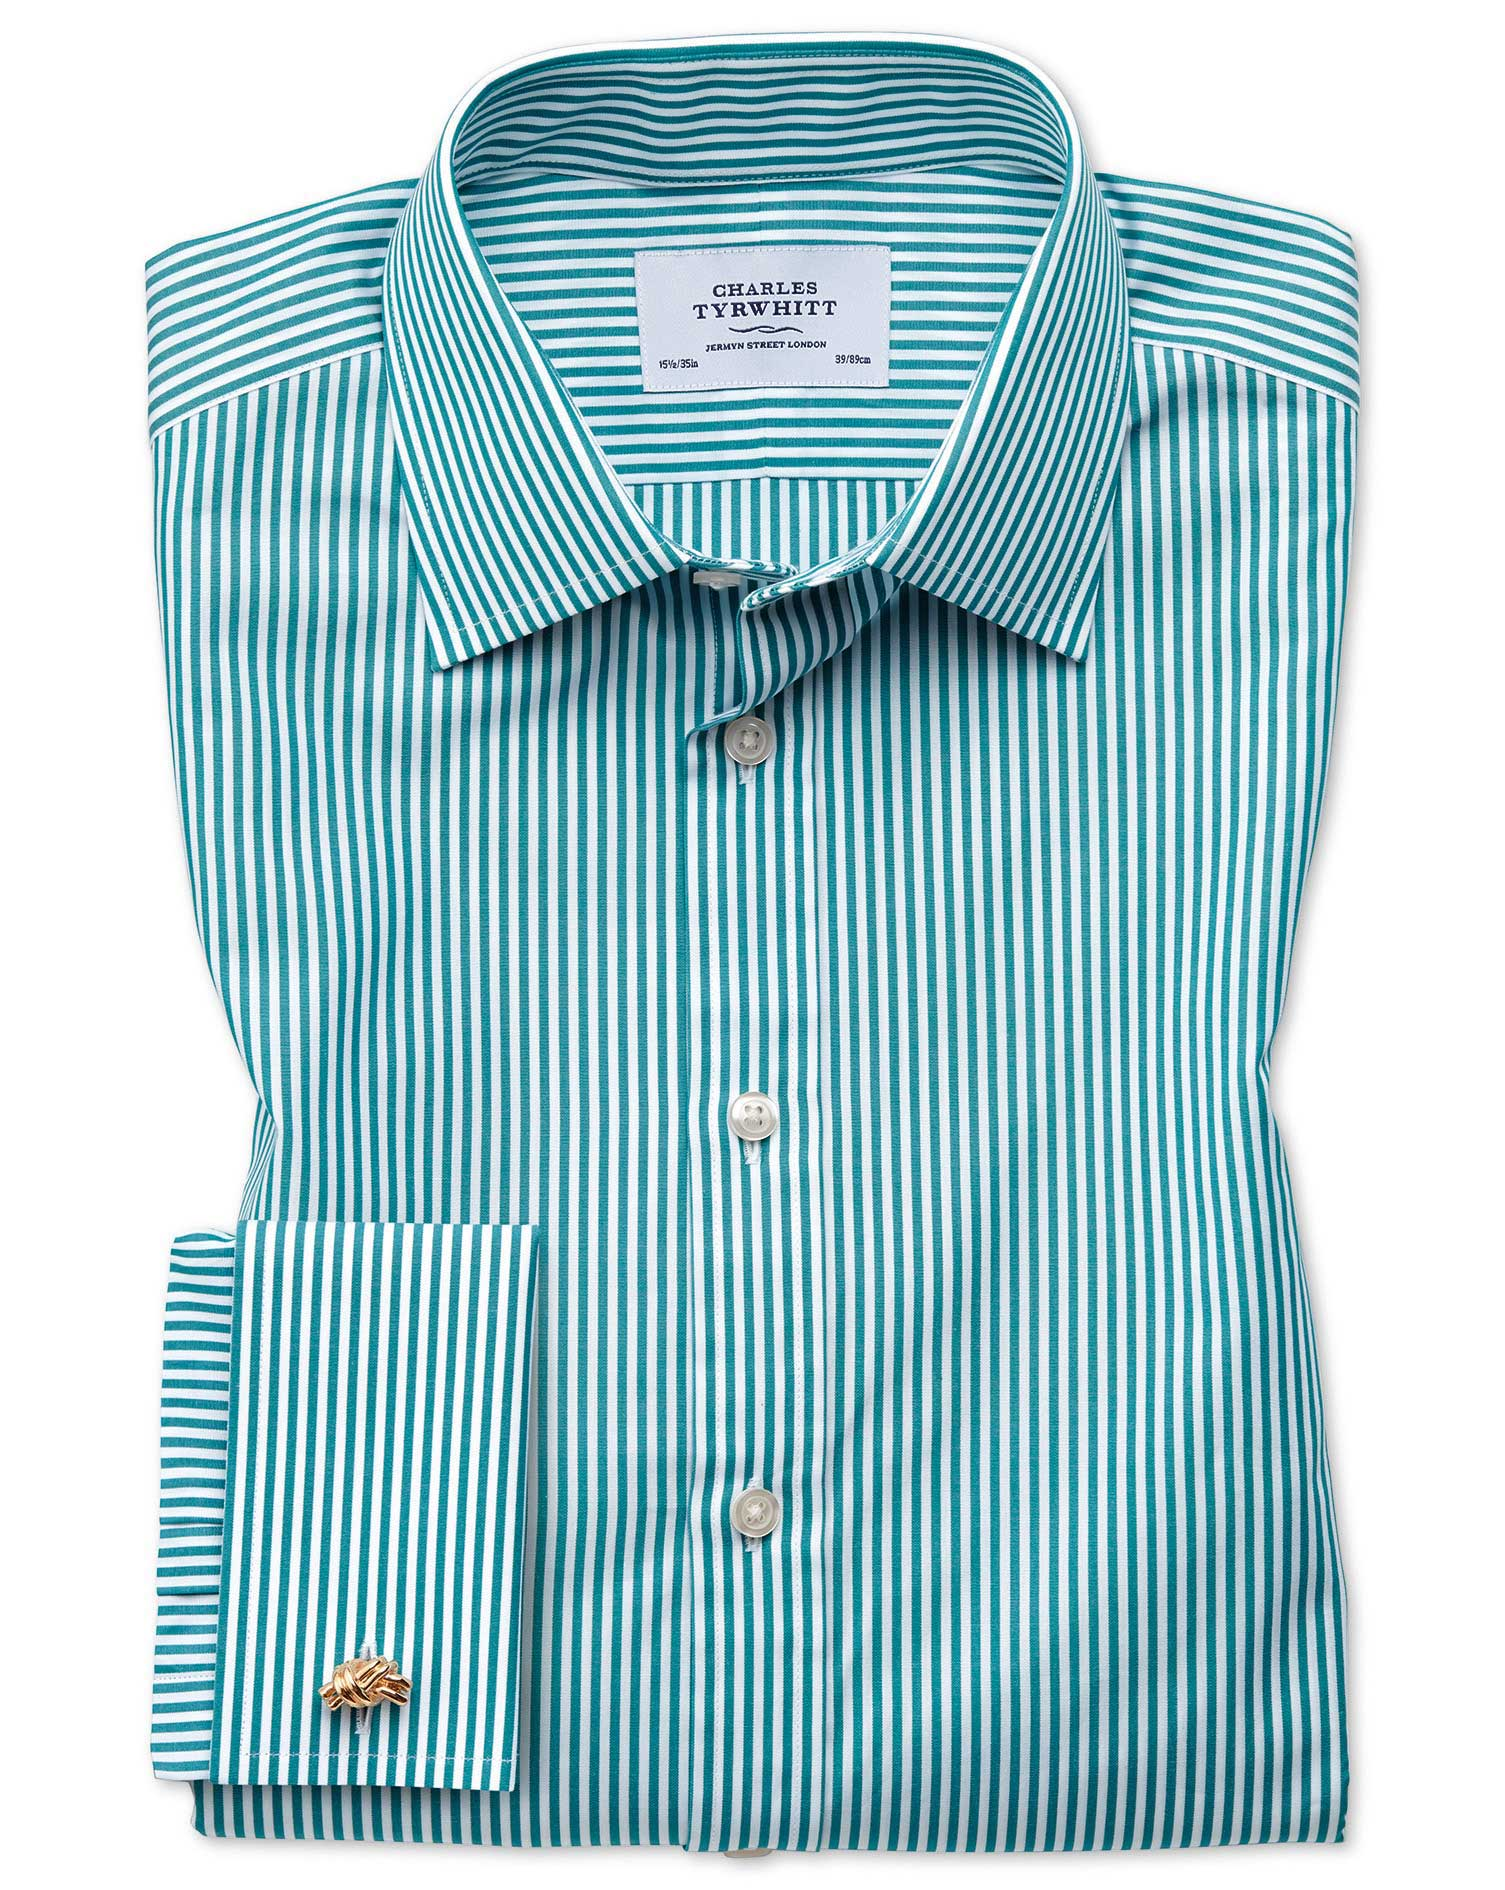 Classic Fit Bengal Stripe Green Cotton Formal Shirt Double Cuff Size 16.5/33 by Charles Tyrwhitt